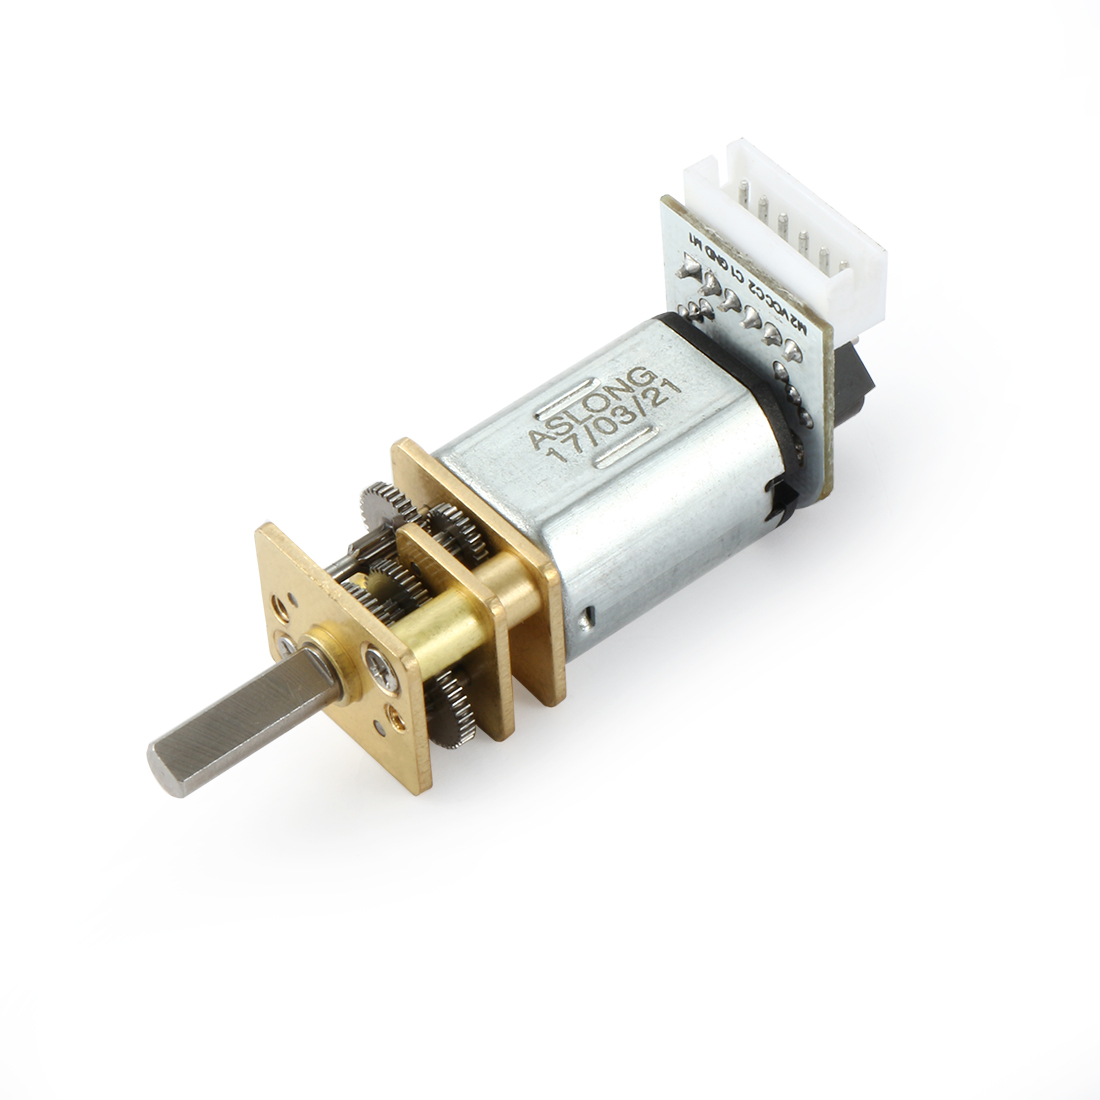 DC 3V 50RPM Mini Speed Reduction Motor Electric Micro Gear Box with 2 Terminals